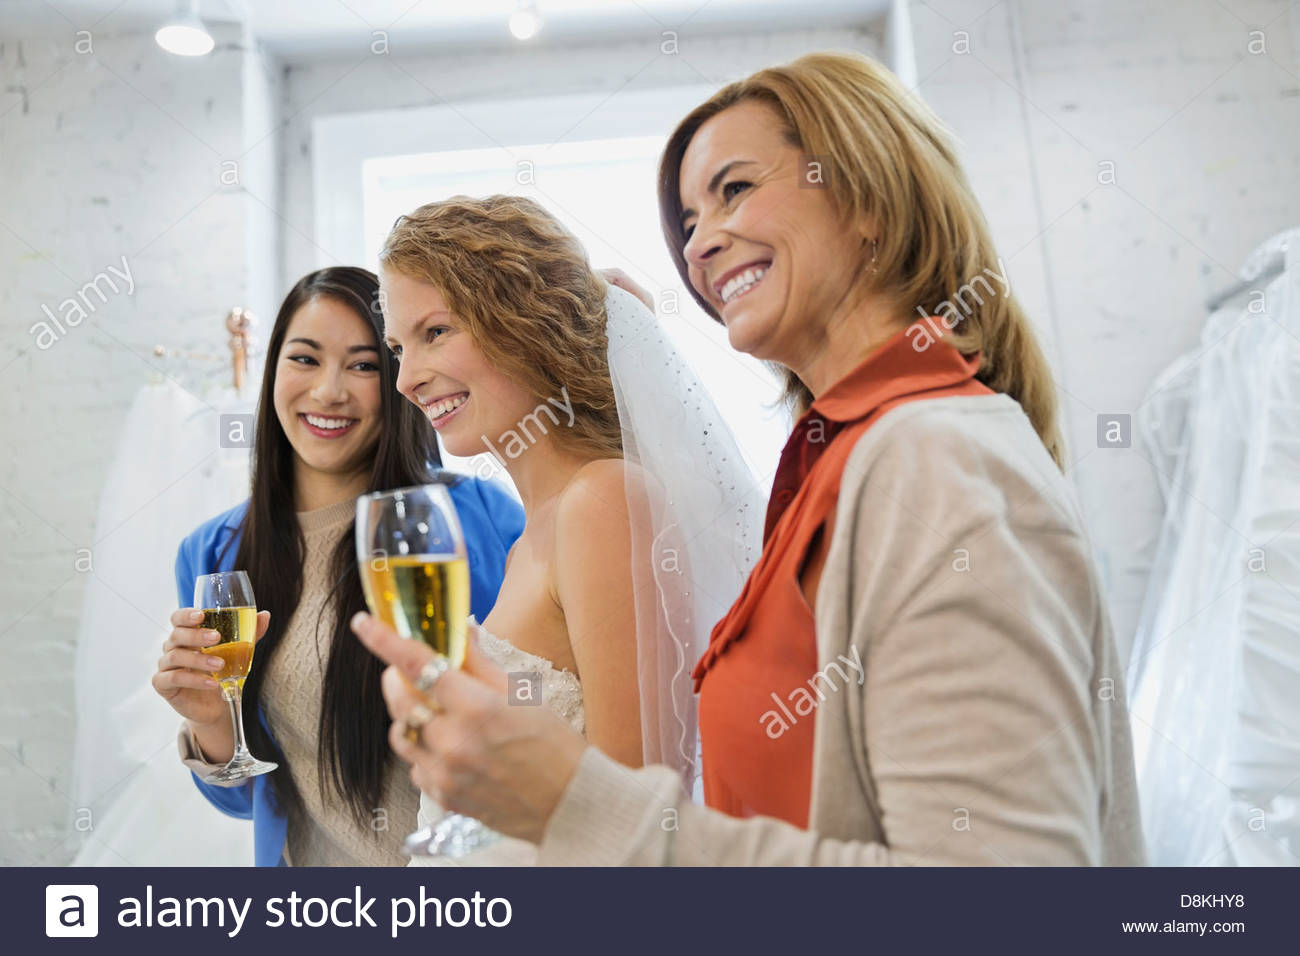 Woman trying on wedding dress with mother and friend at bridal store - Stock Image